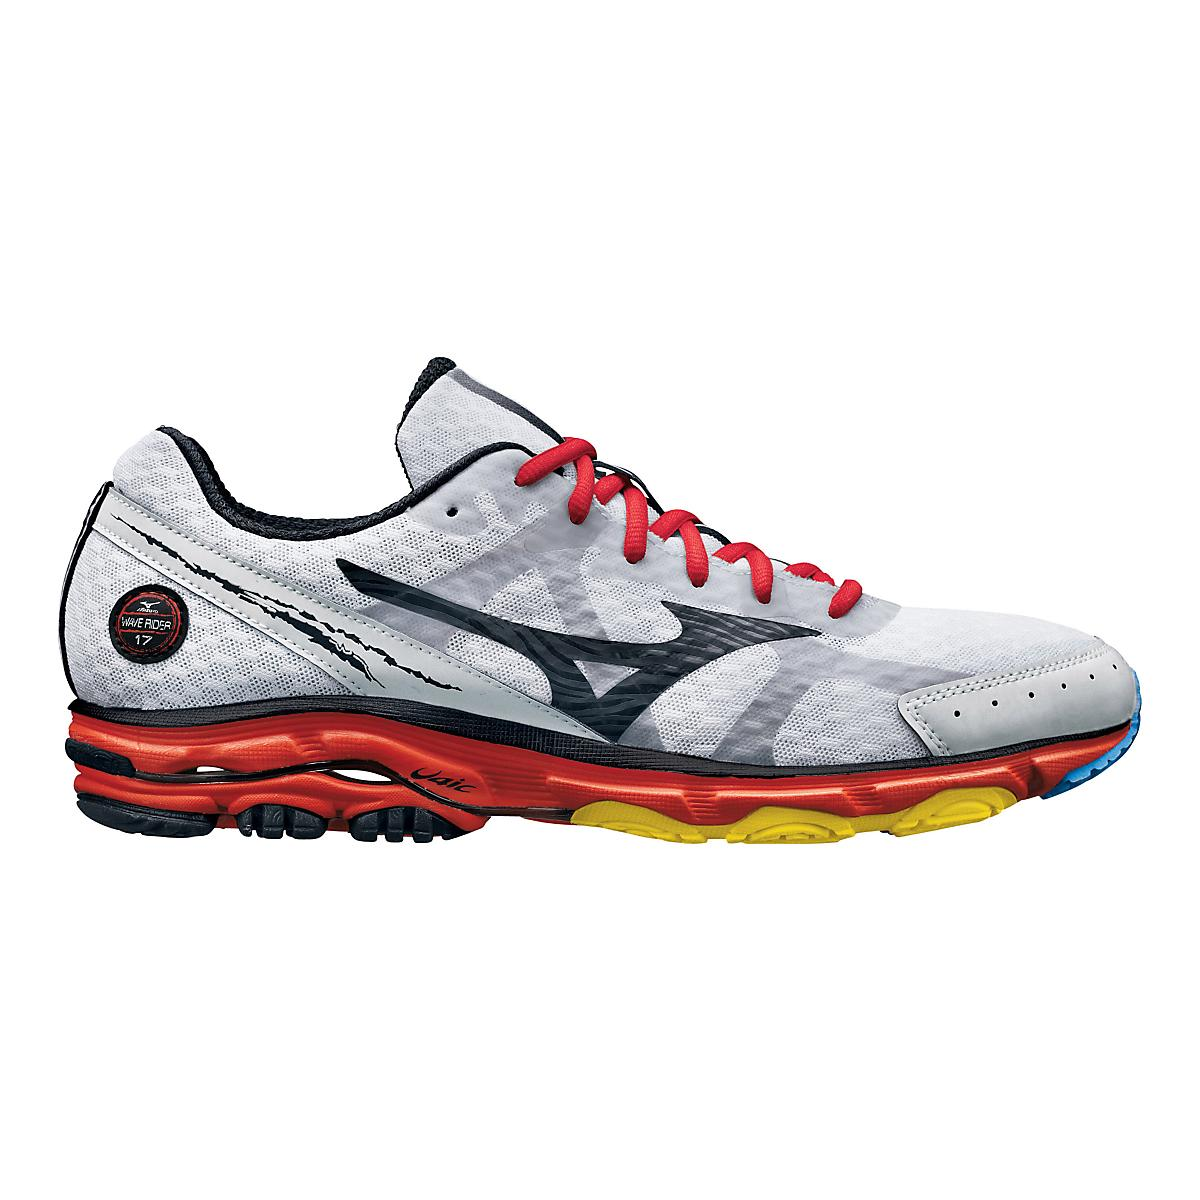 watch 72a25 4cf9d Mens Mizuno Wave Rider 17 Running Shoe at Road Runner Sports